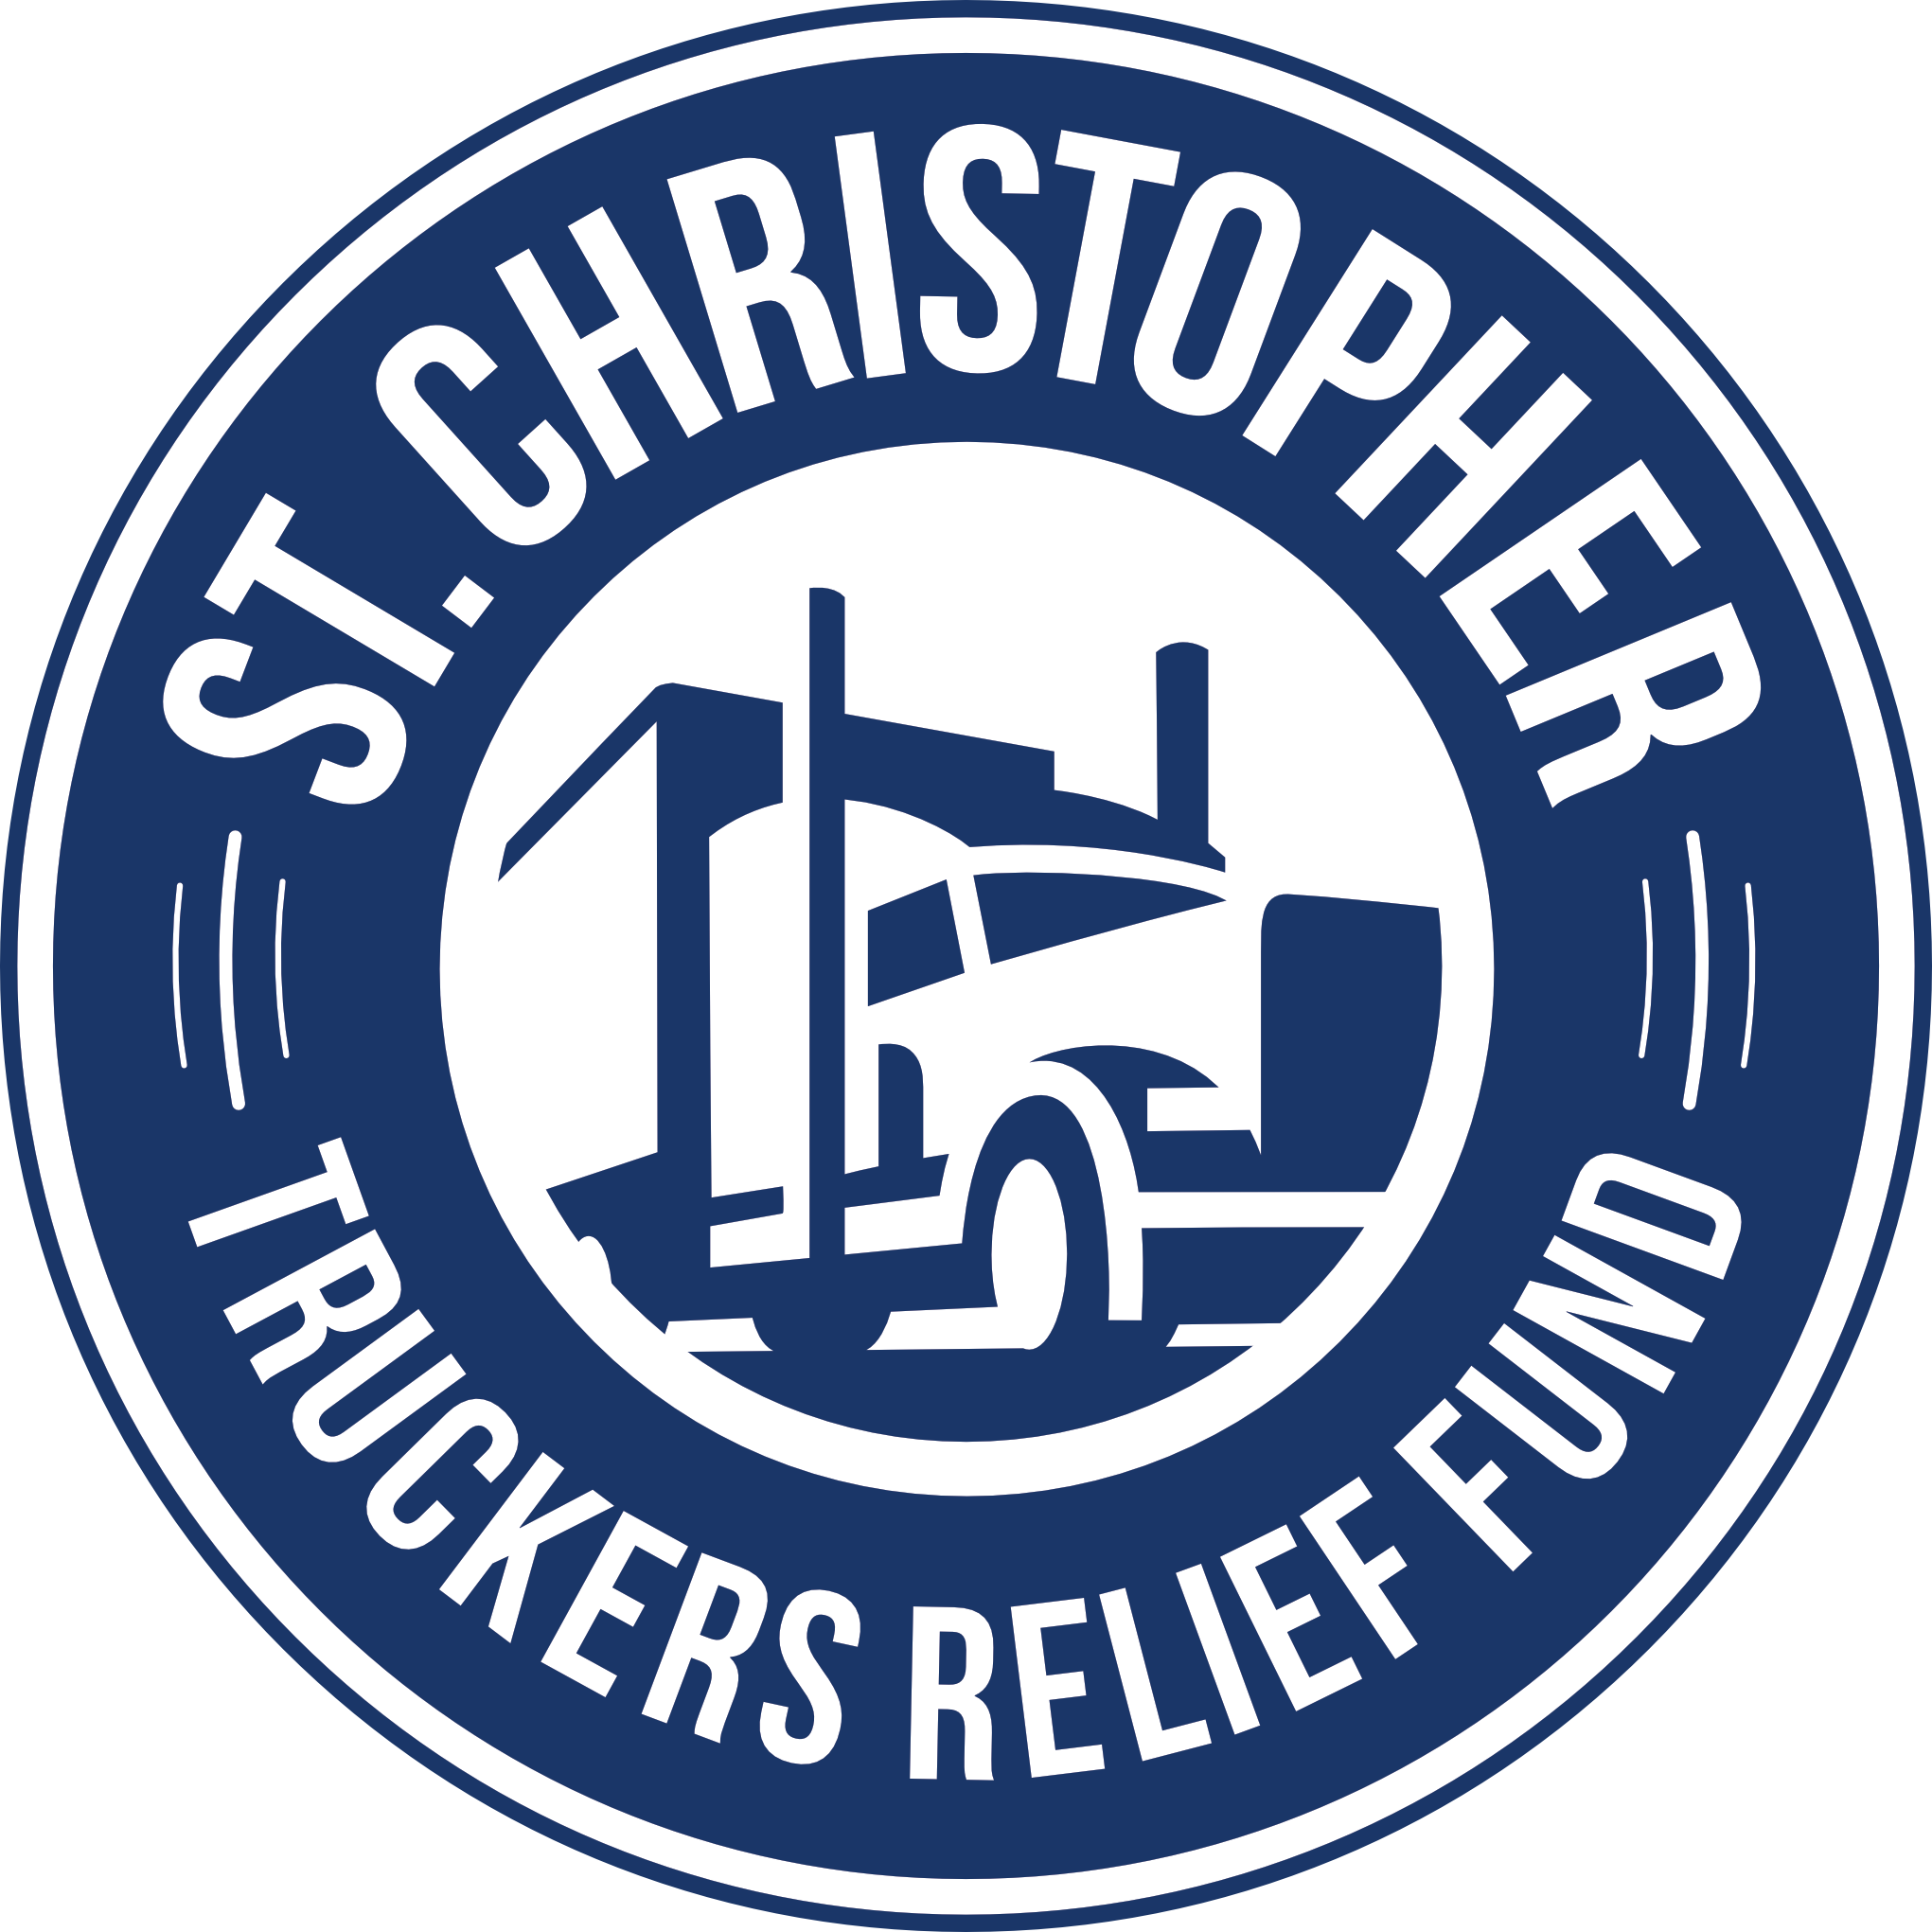 St Christophers Truckers Relief Fund